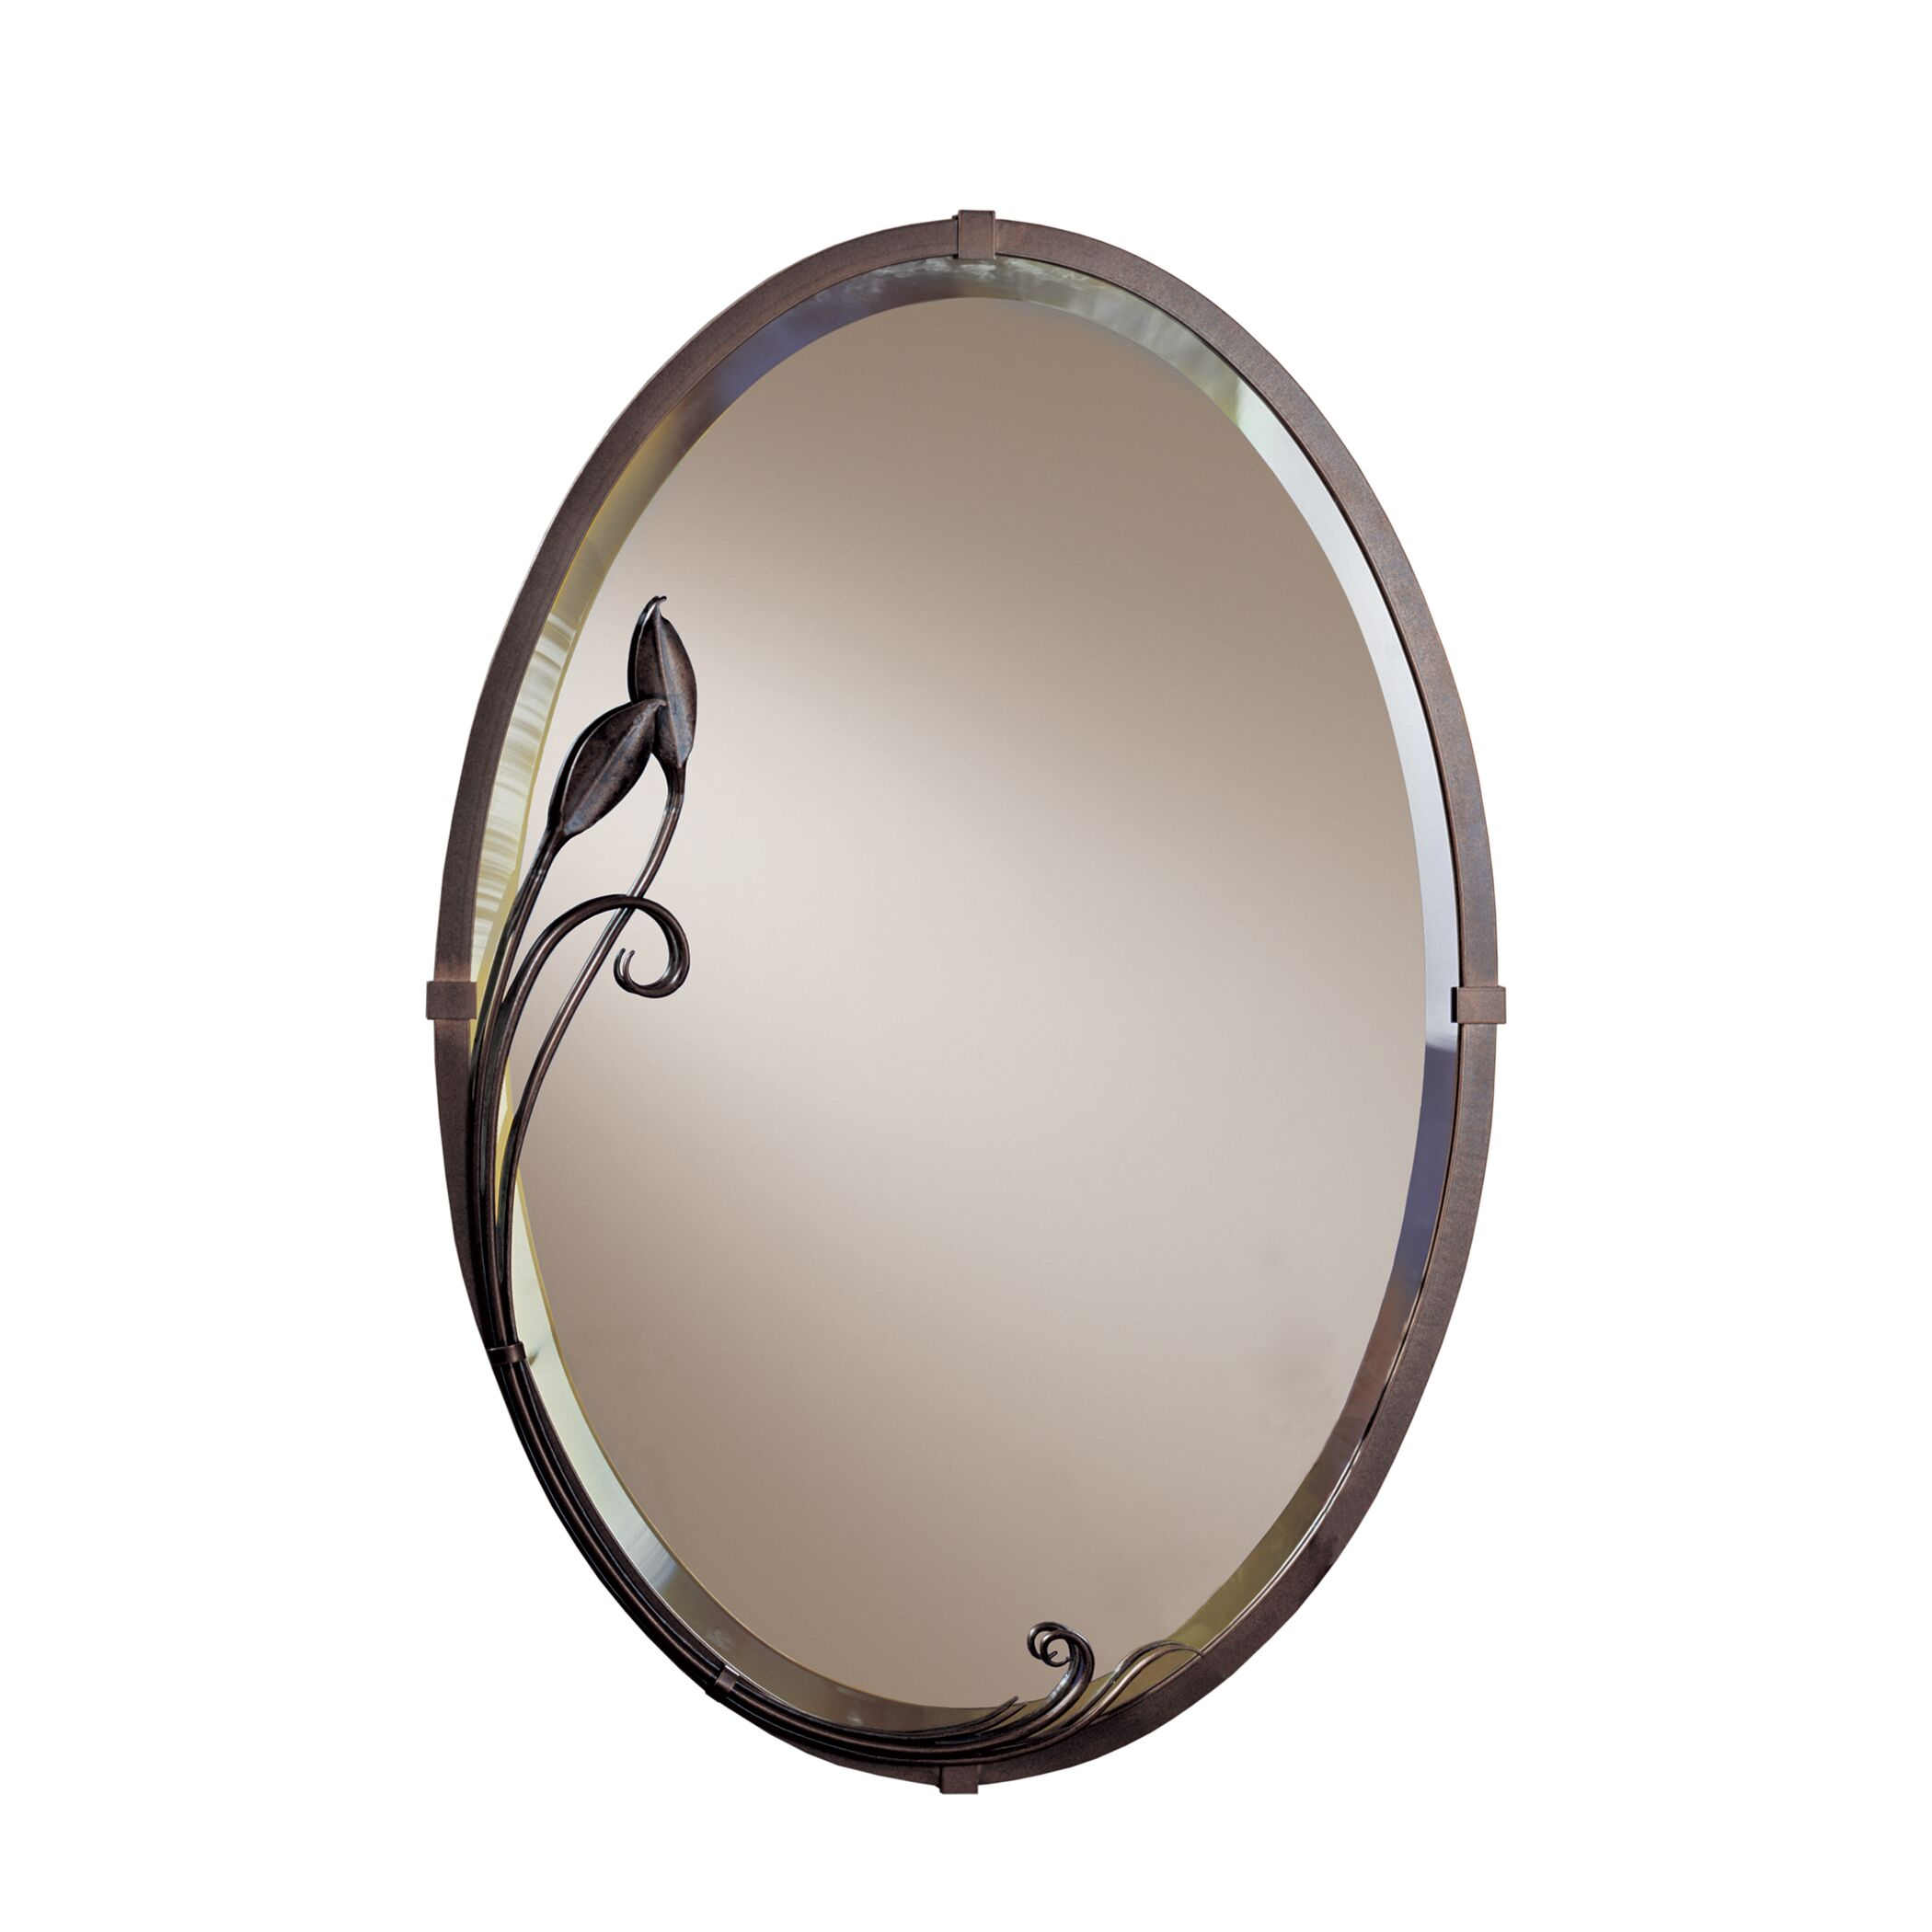 Thumbnail for Beveled Oval Mirror with Leaf